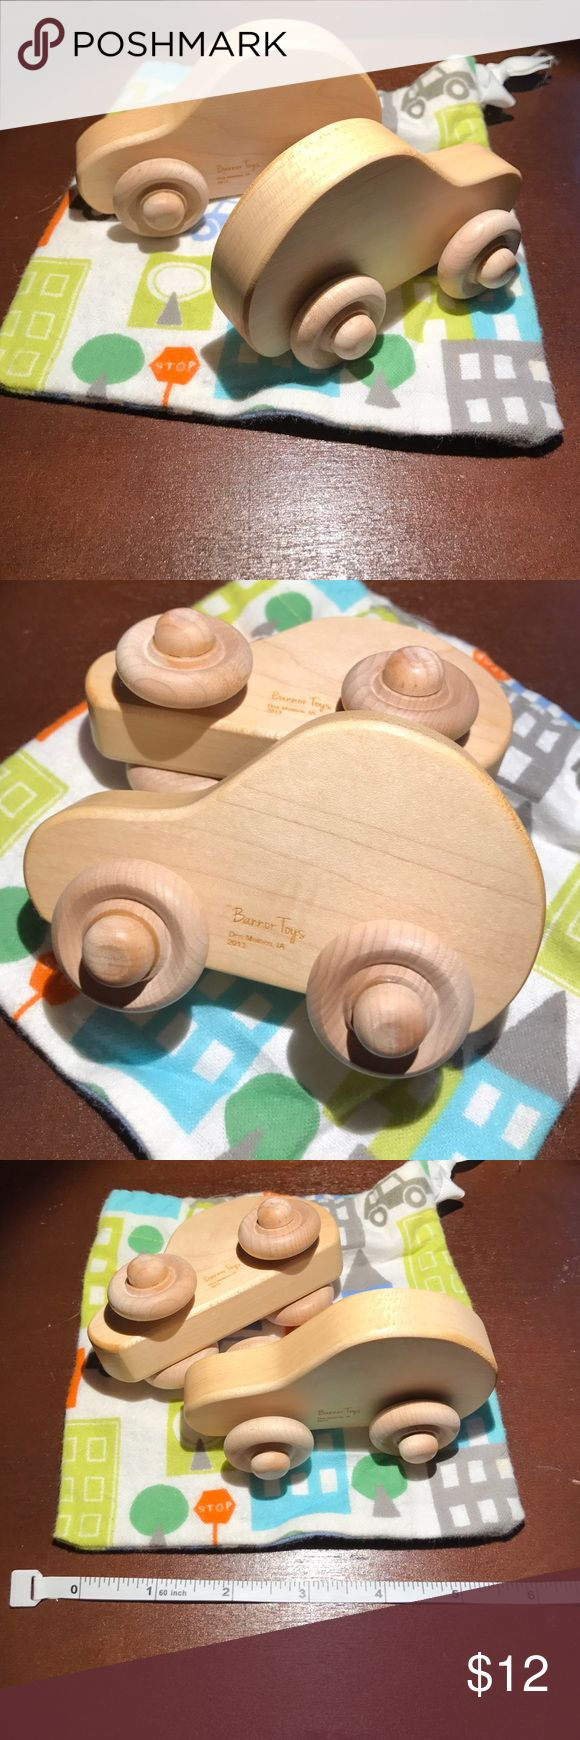 Handmade Wooden Cars Hand crafted, toxic free, made with love by Bannor Toys. Comes with bag shown. Bannor Other